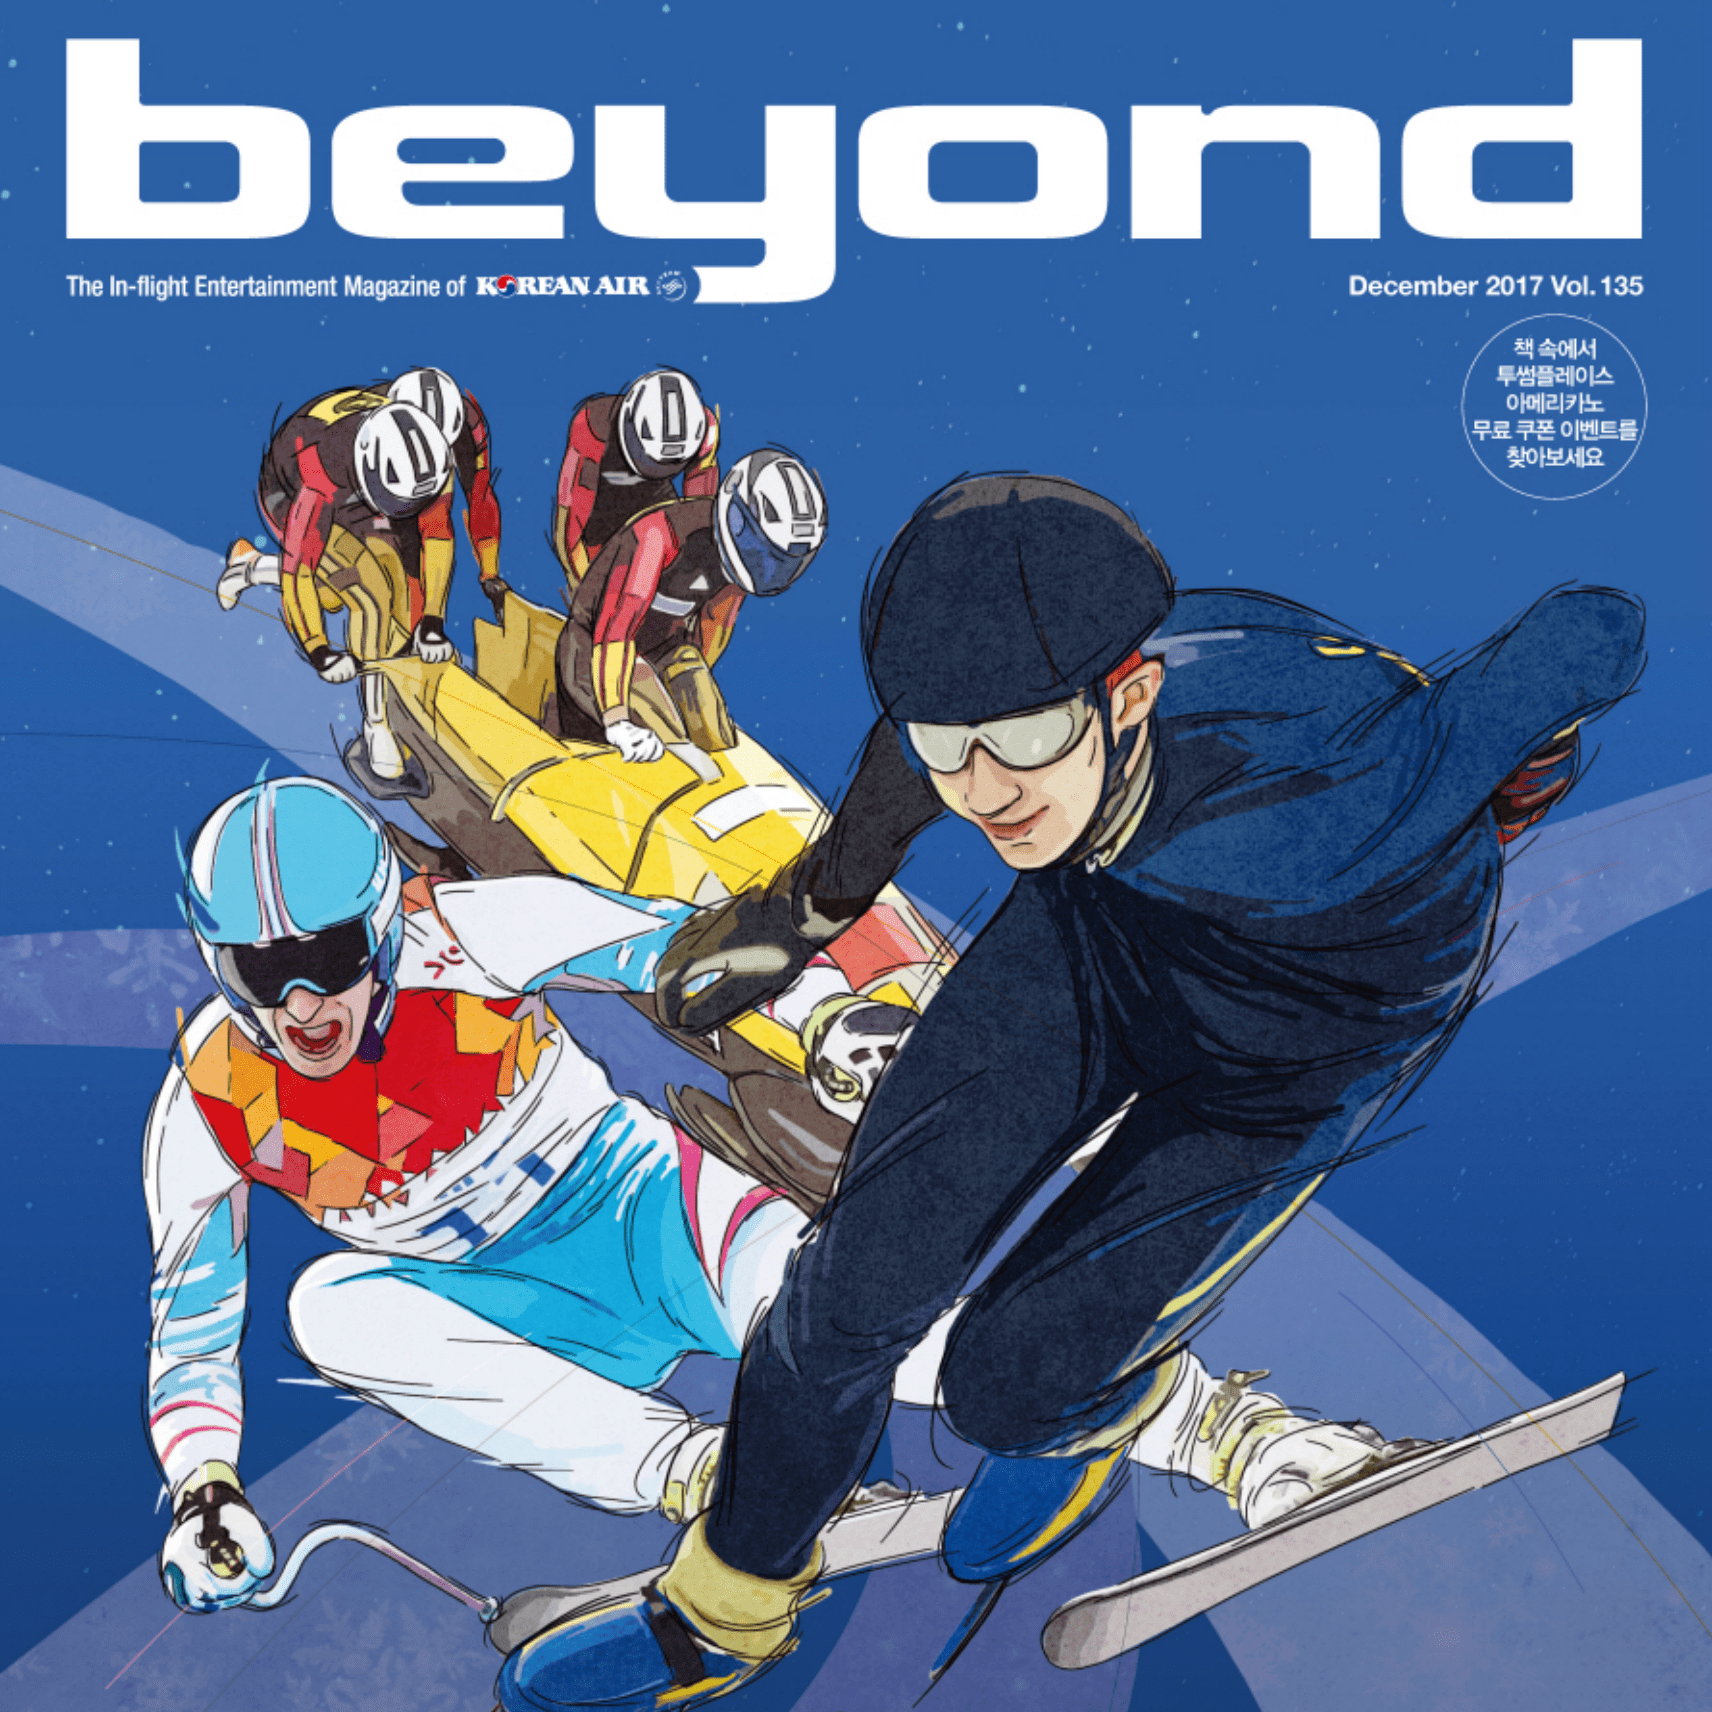 Beyond Vol. 135 - December 2017 - 112 pages